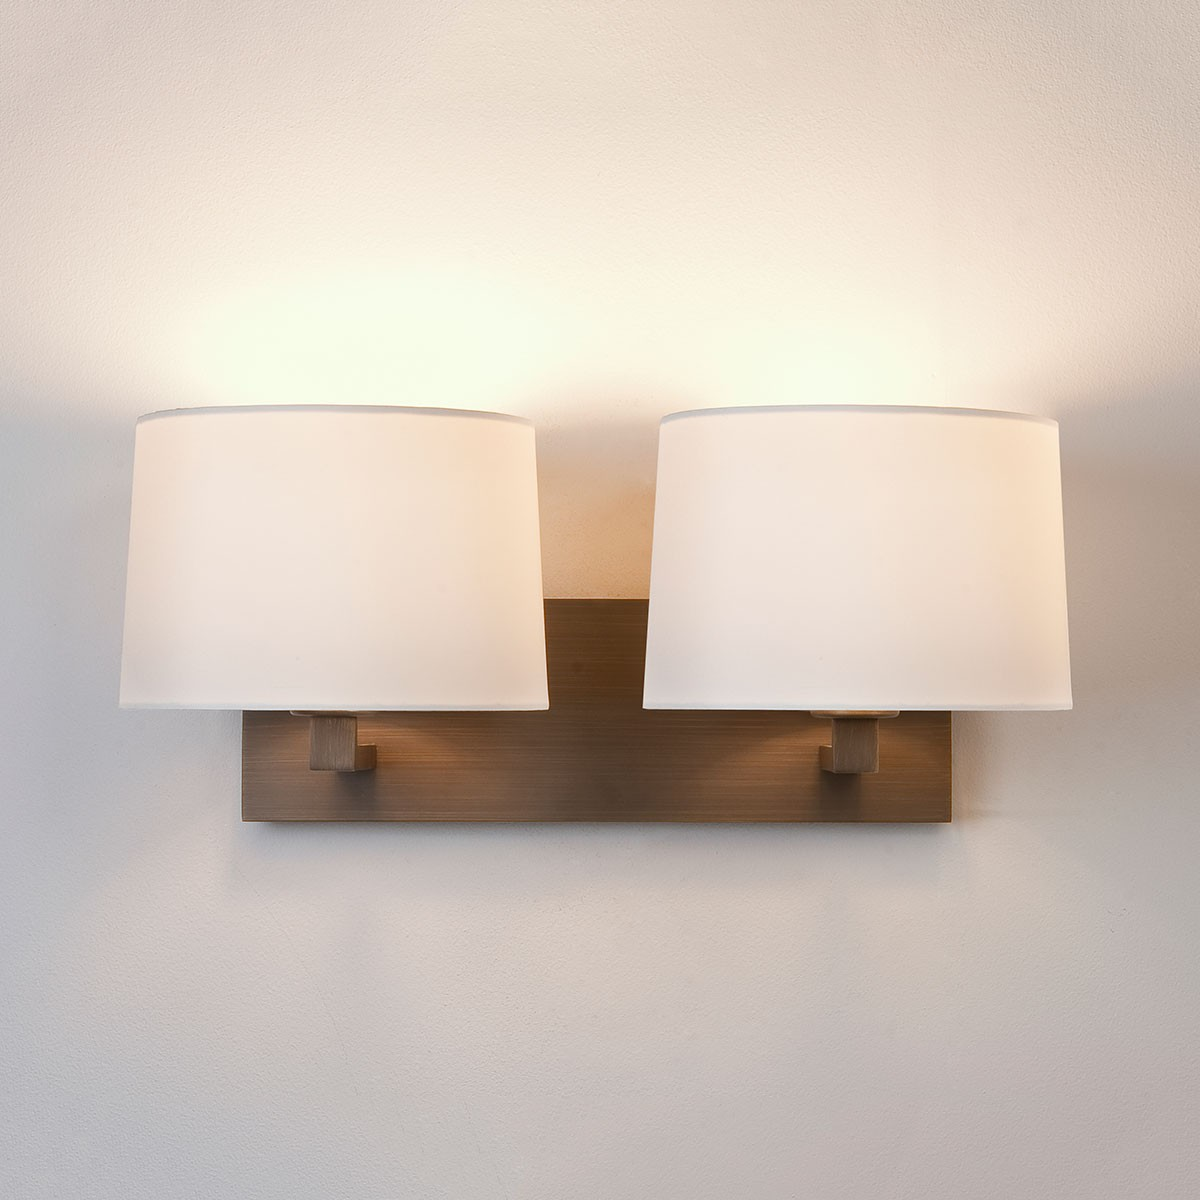 Wall Light Astro Azumi Twin Bronze Wall Light At Uk Electrical Supplies